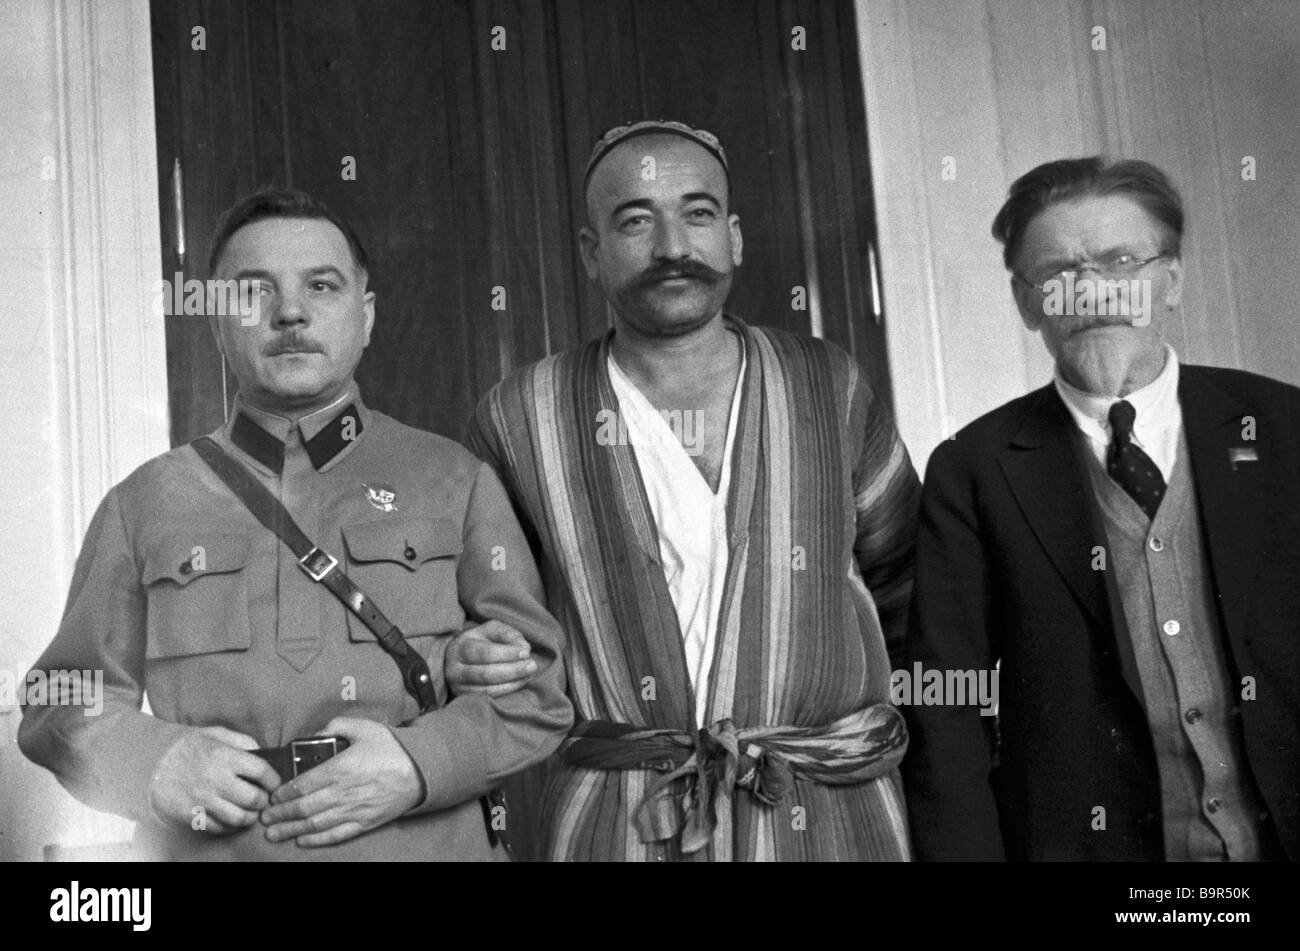 Defense commissar K Voroshilov left and chairman of the Central Executive Committee M Kalinin right at the 2nd congress - Stock Image